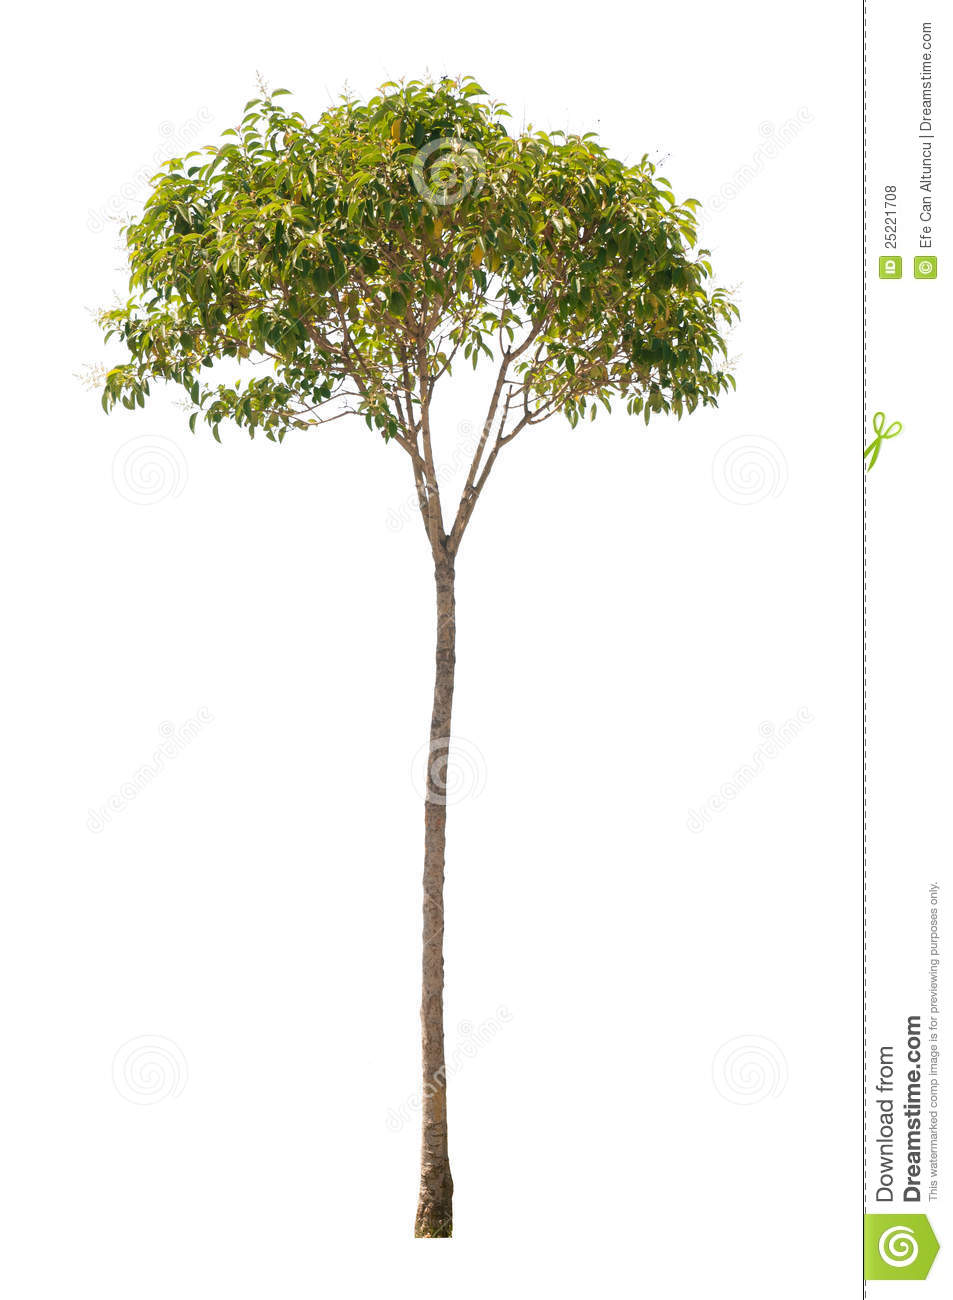 Tall thin tree clipart svg Isolated Tree Royalty Free Stock Photos - Image: 25221708 svg